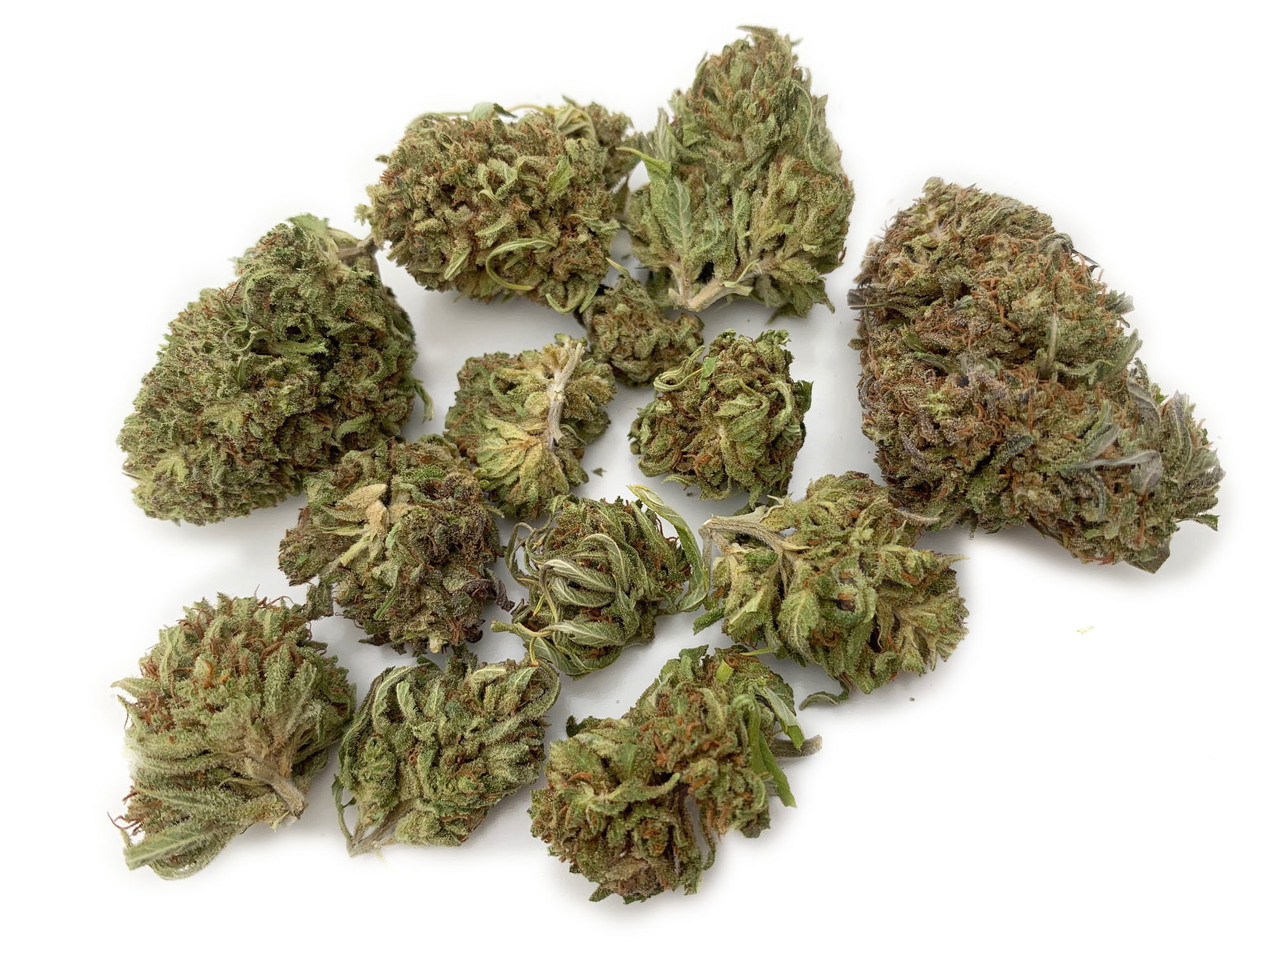 about CBD flower buds